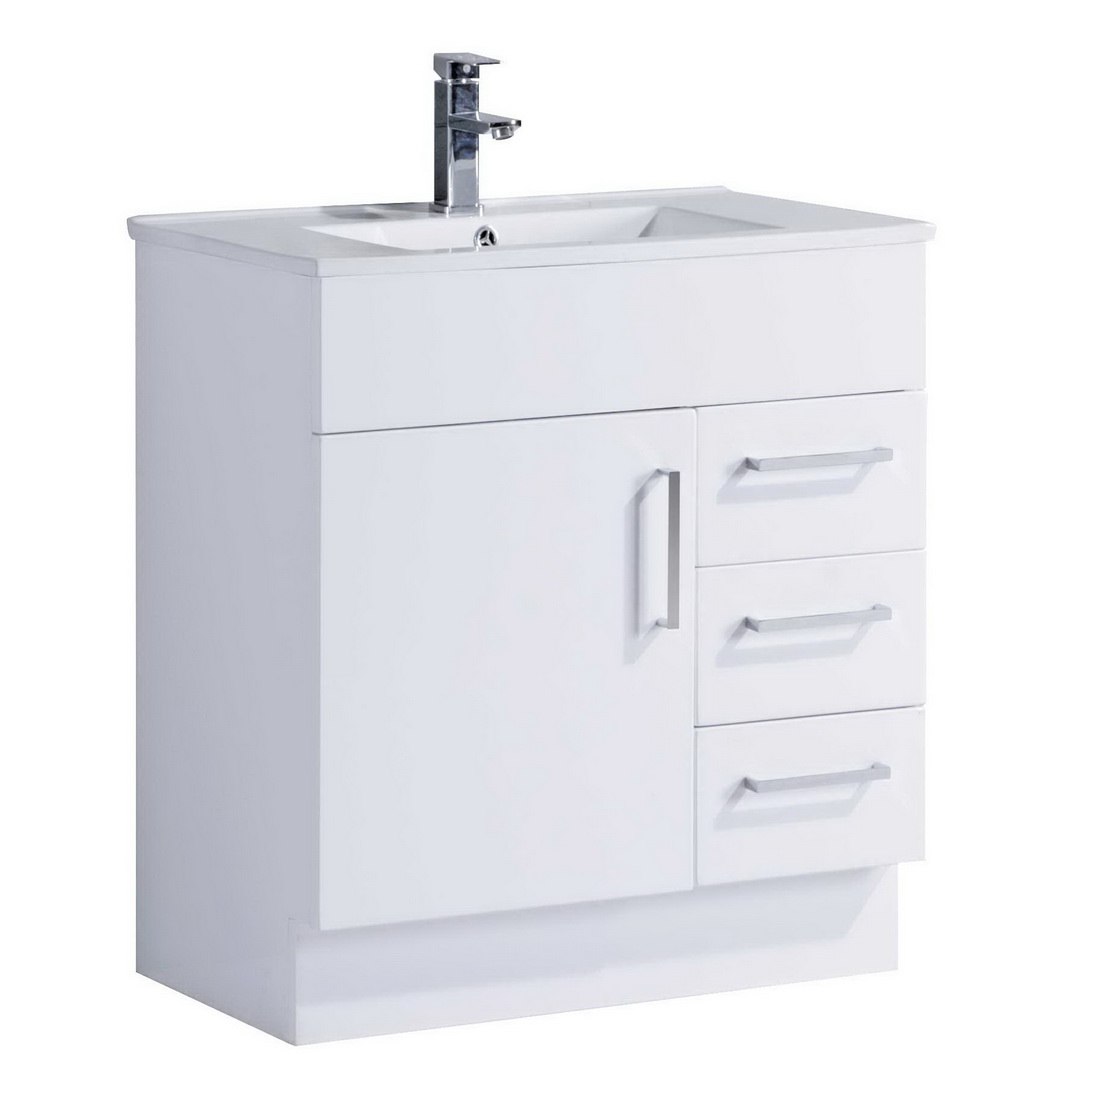 Projex 750 Floor Standing Vanity White Gloss 3 Drawer 1 Door